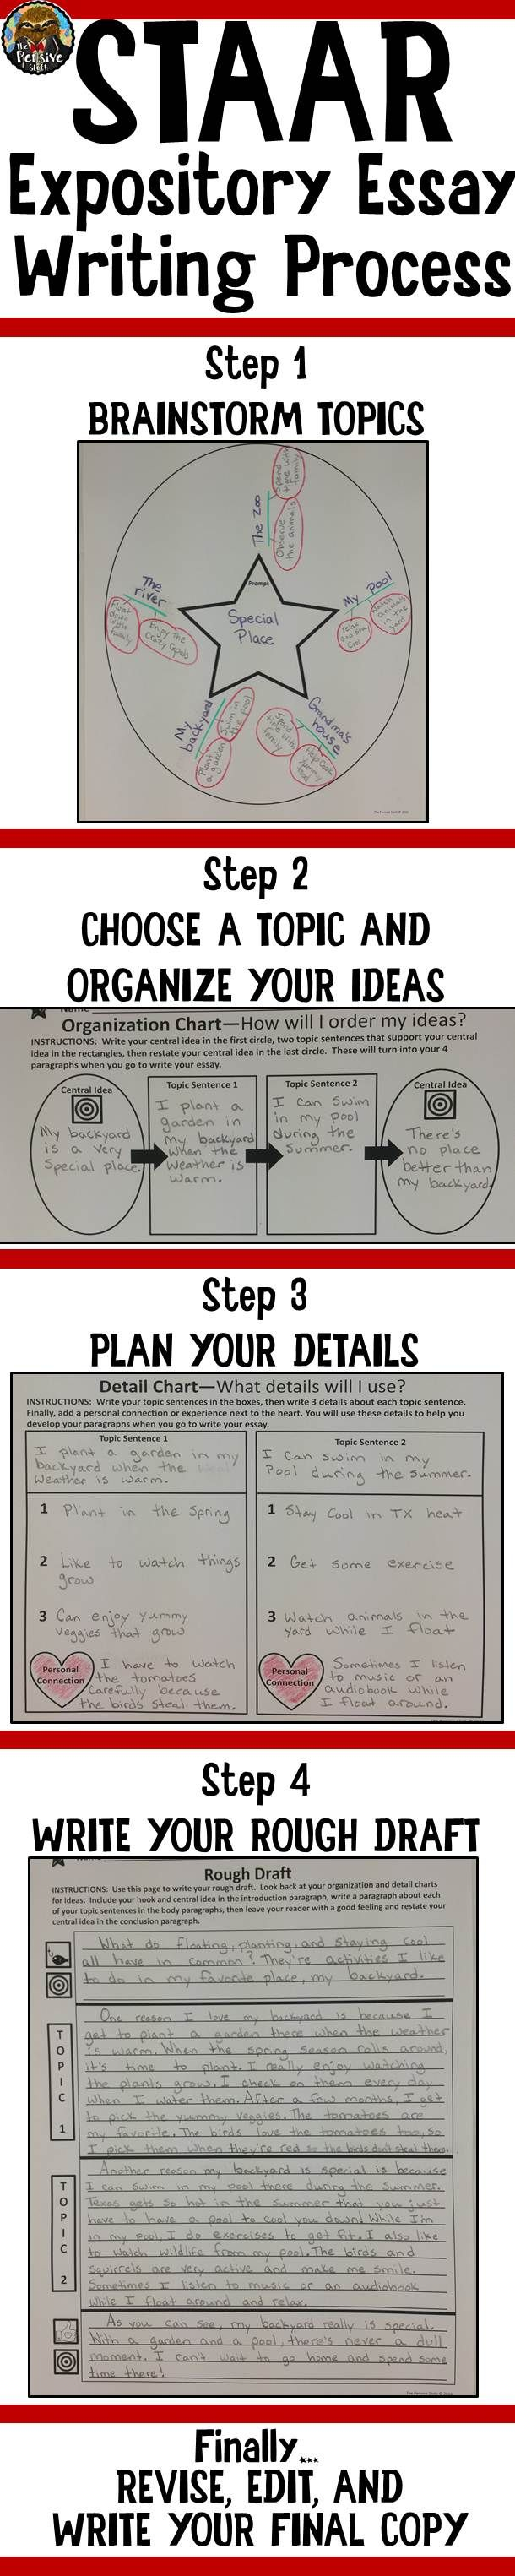 th grade staar writing expository essay graphic organizers staar expository essay graphic organizers to help struggling students succeed on the grade writing test description there are 4 graphic organizers and a